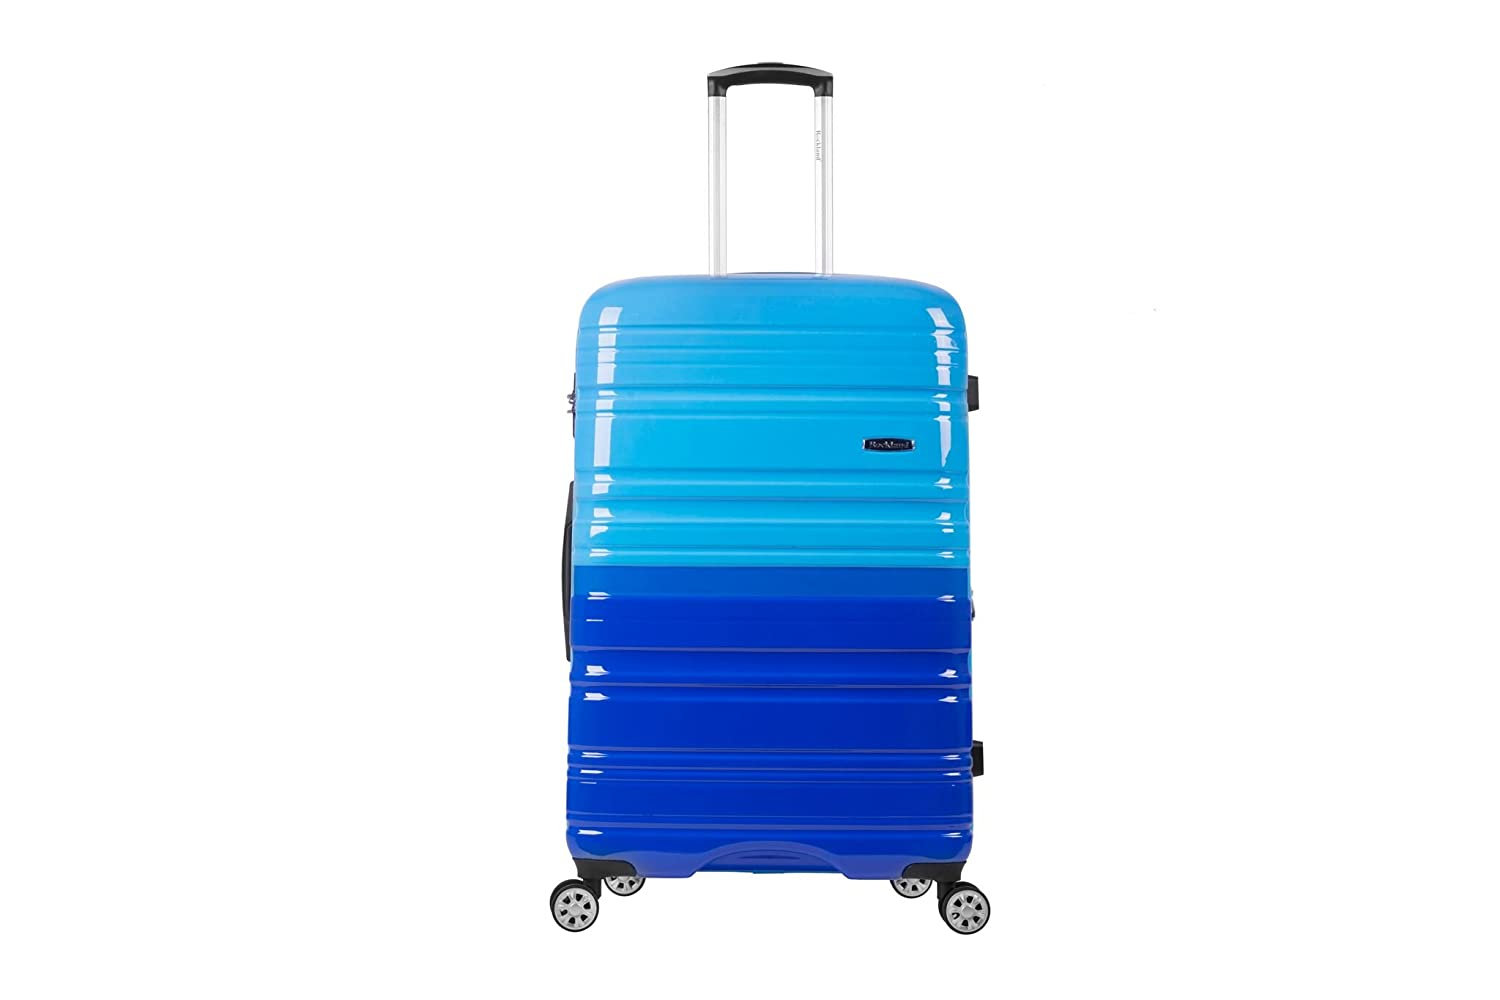 Rockland Luggage Melbourne 20 Inch Expandable Carry On, Turquoise, One Size Fox Luggage F145-TURQUOISE